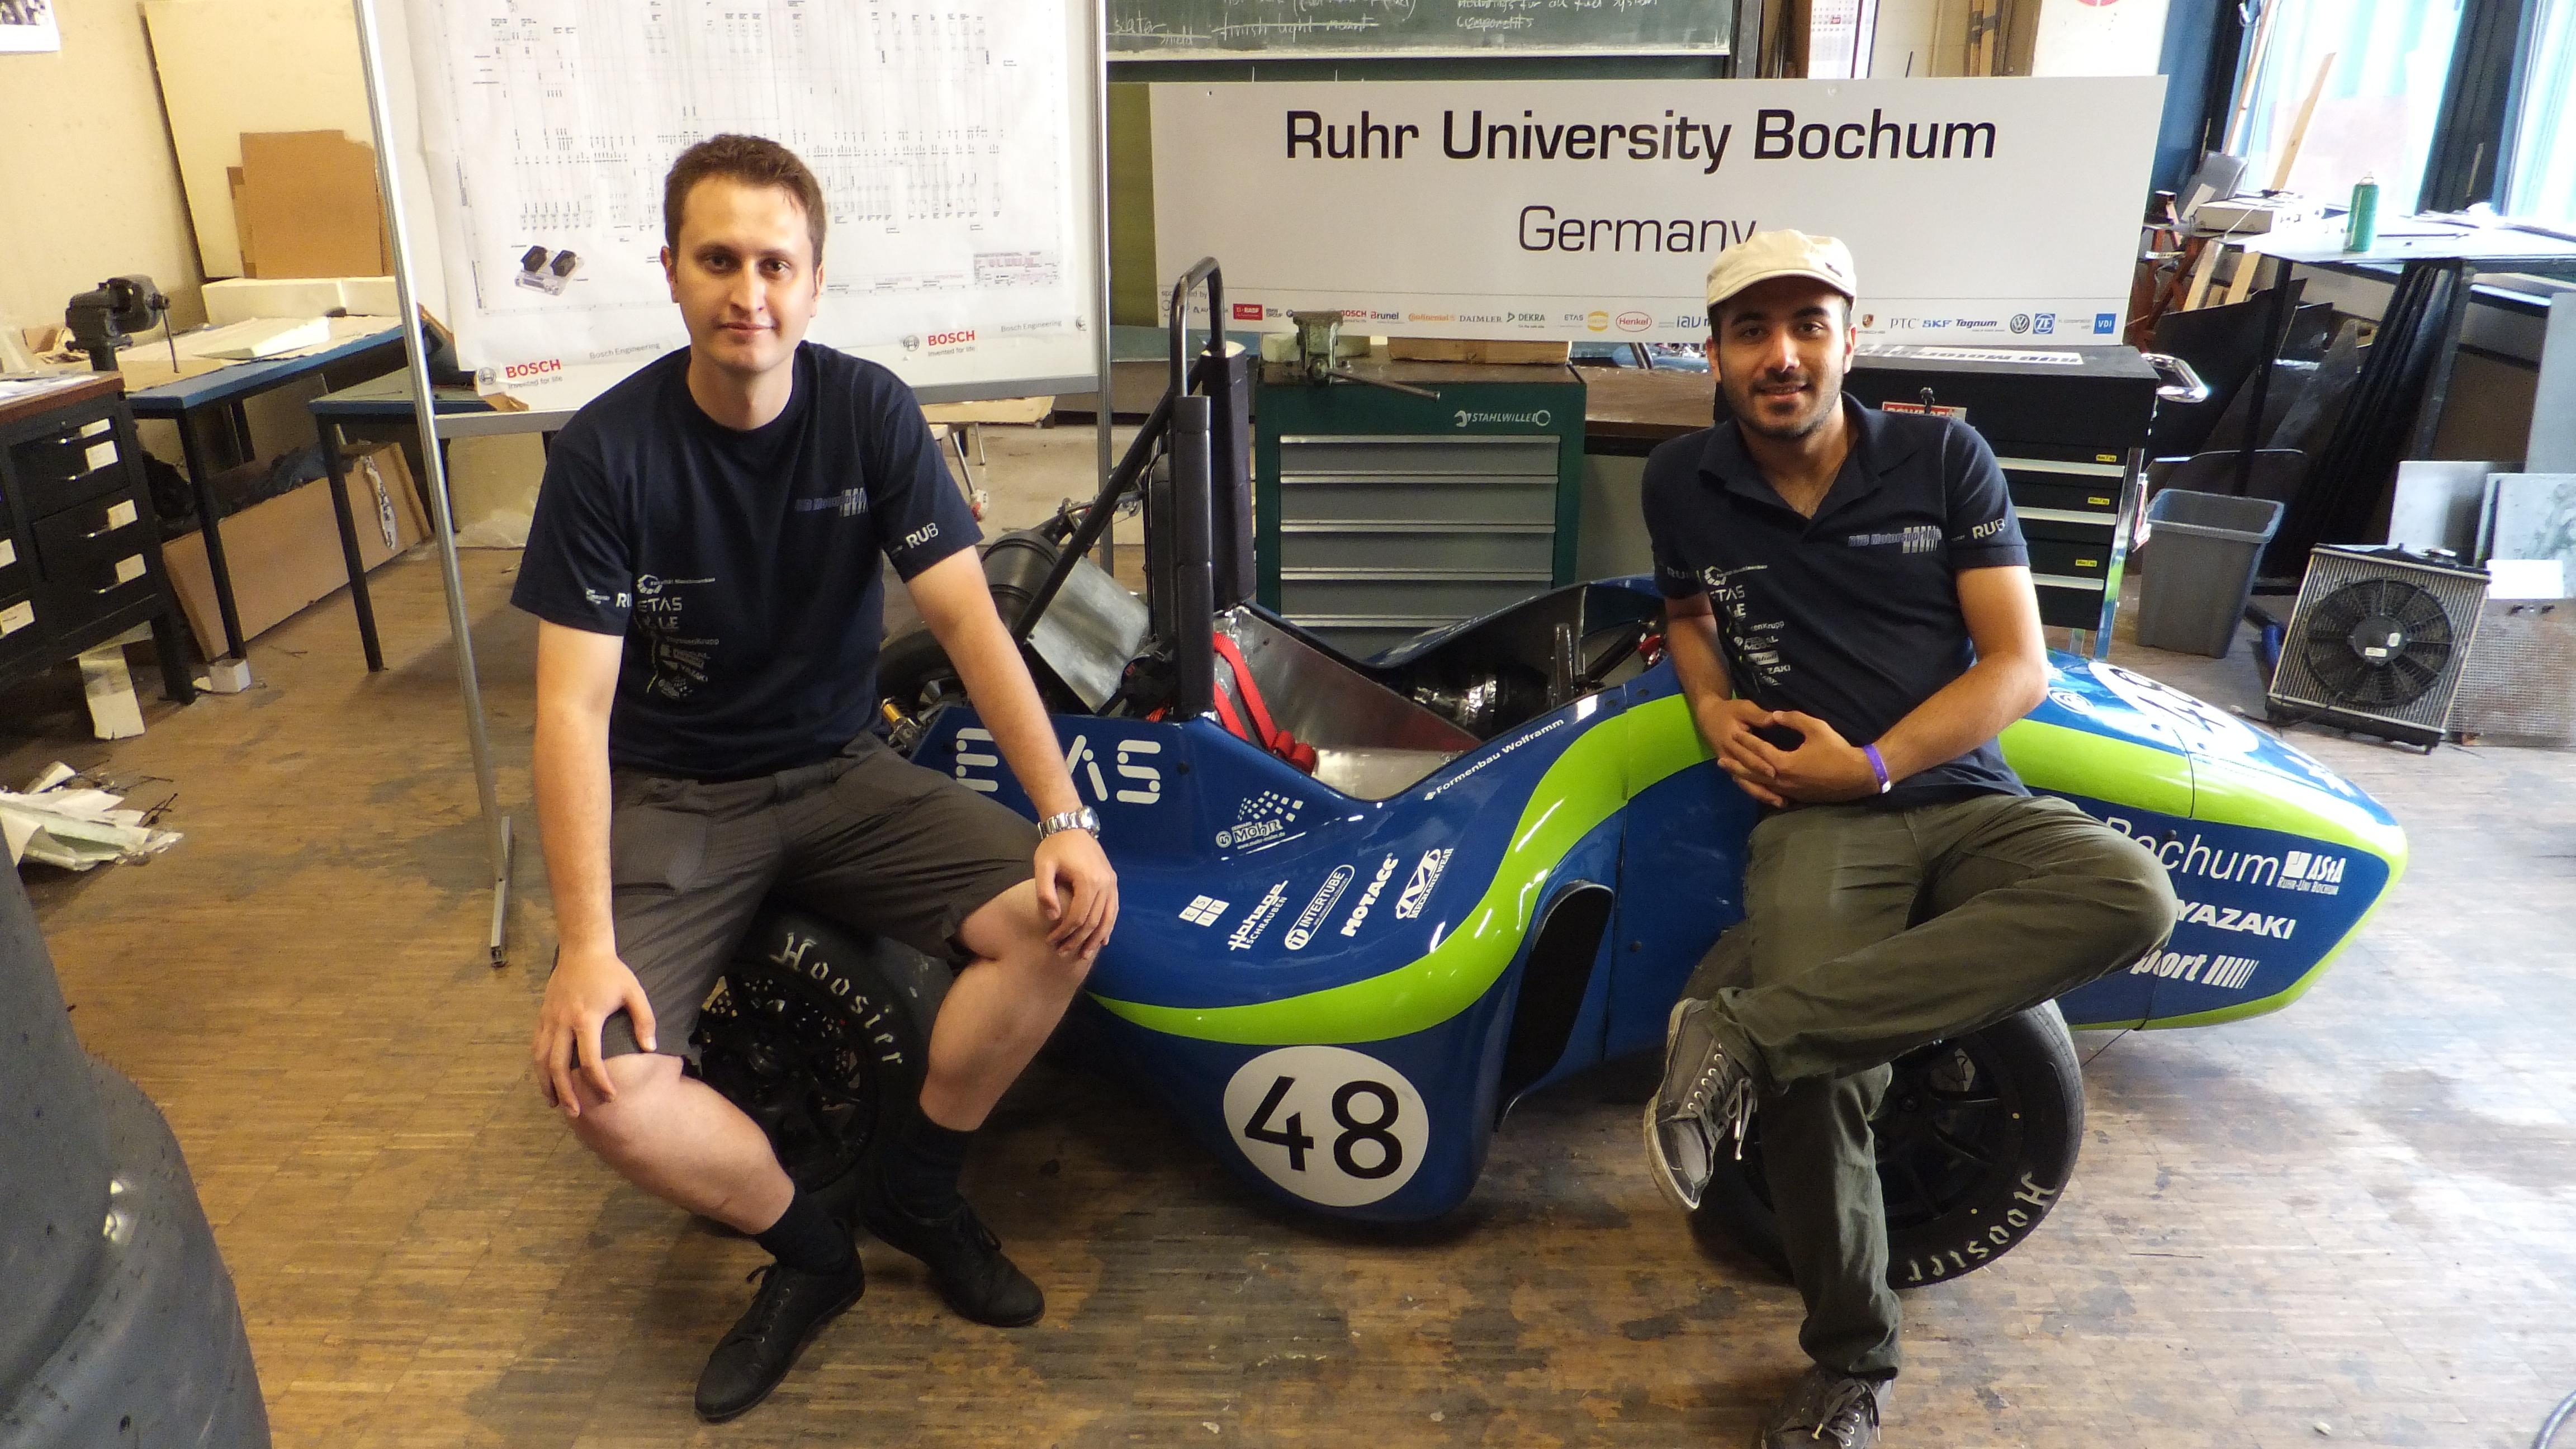 insider-information-by-the-compeng-students-about-rub-motorsport